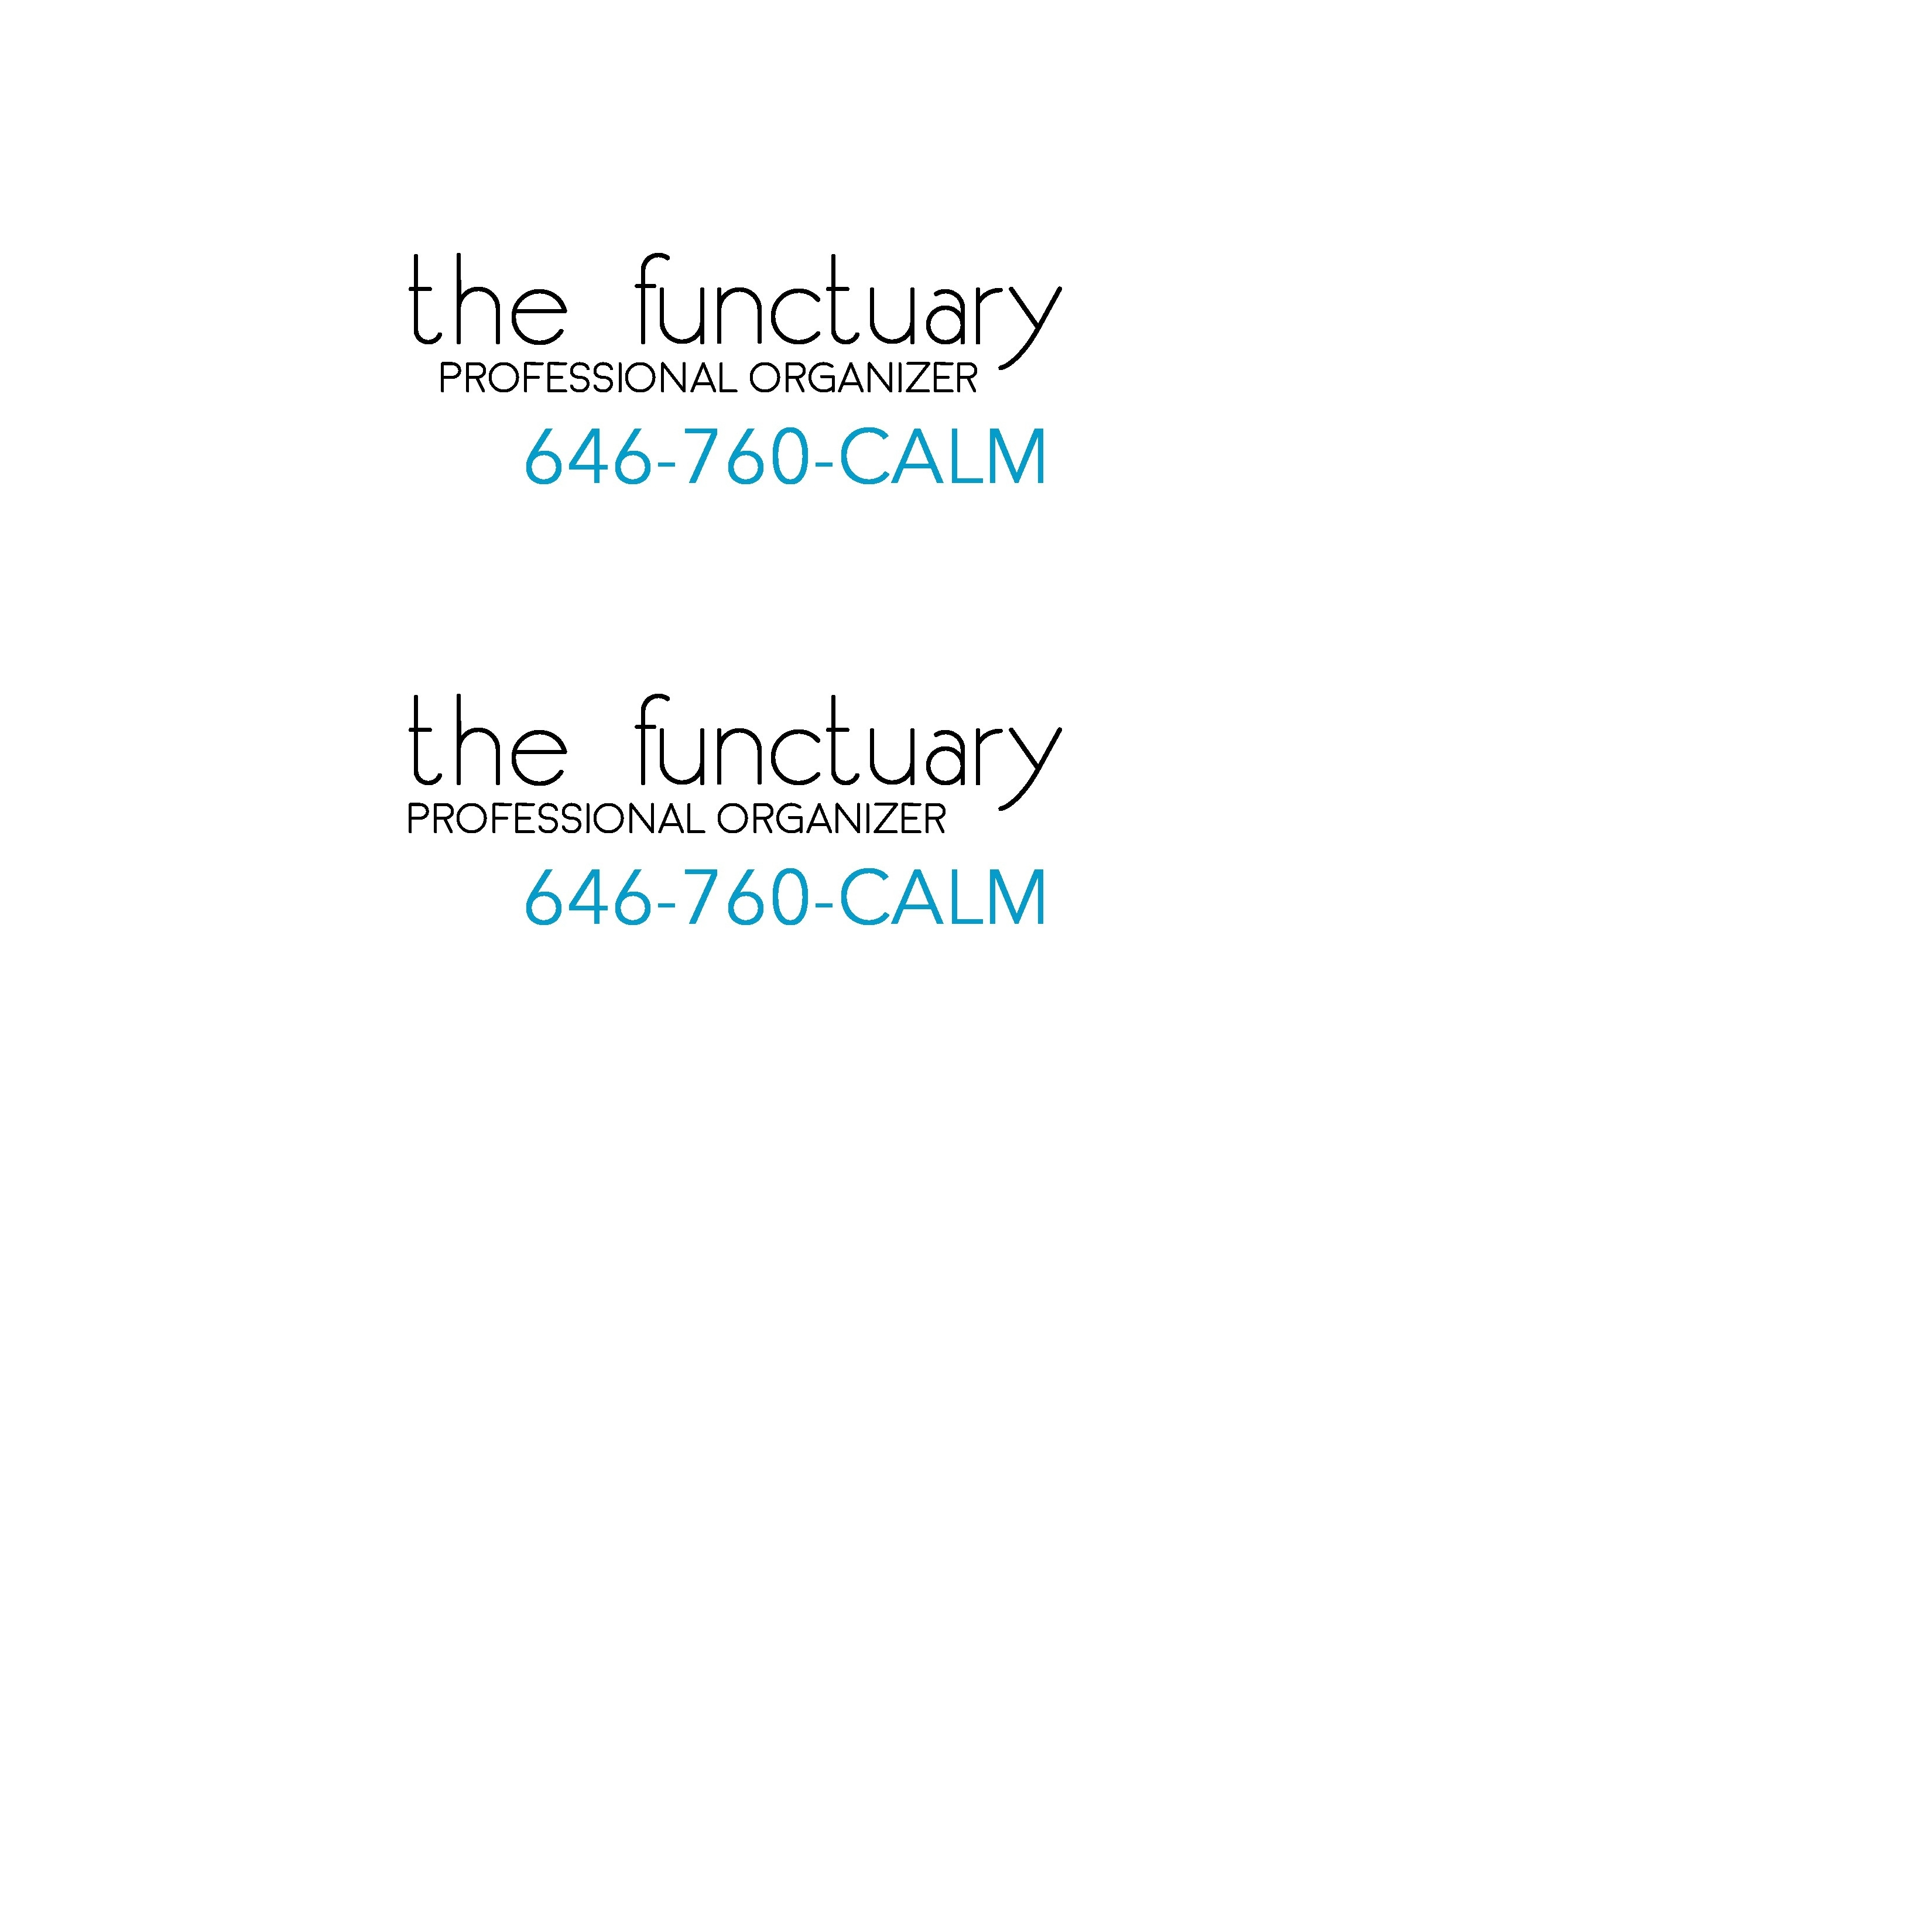 The Functuary - ad image